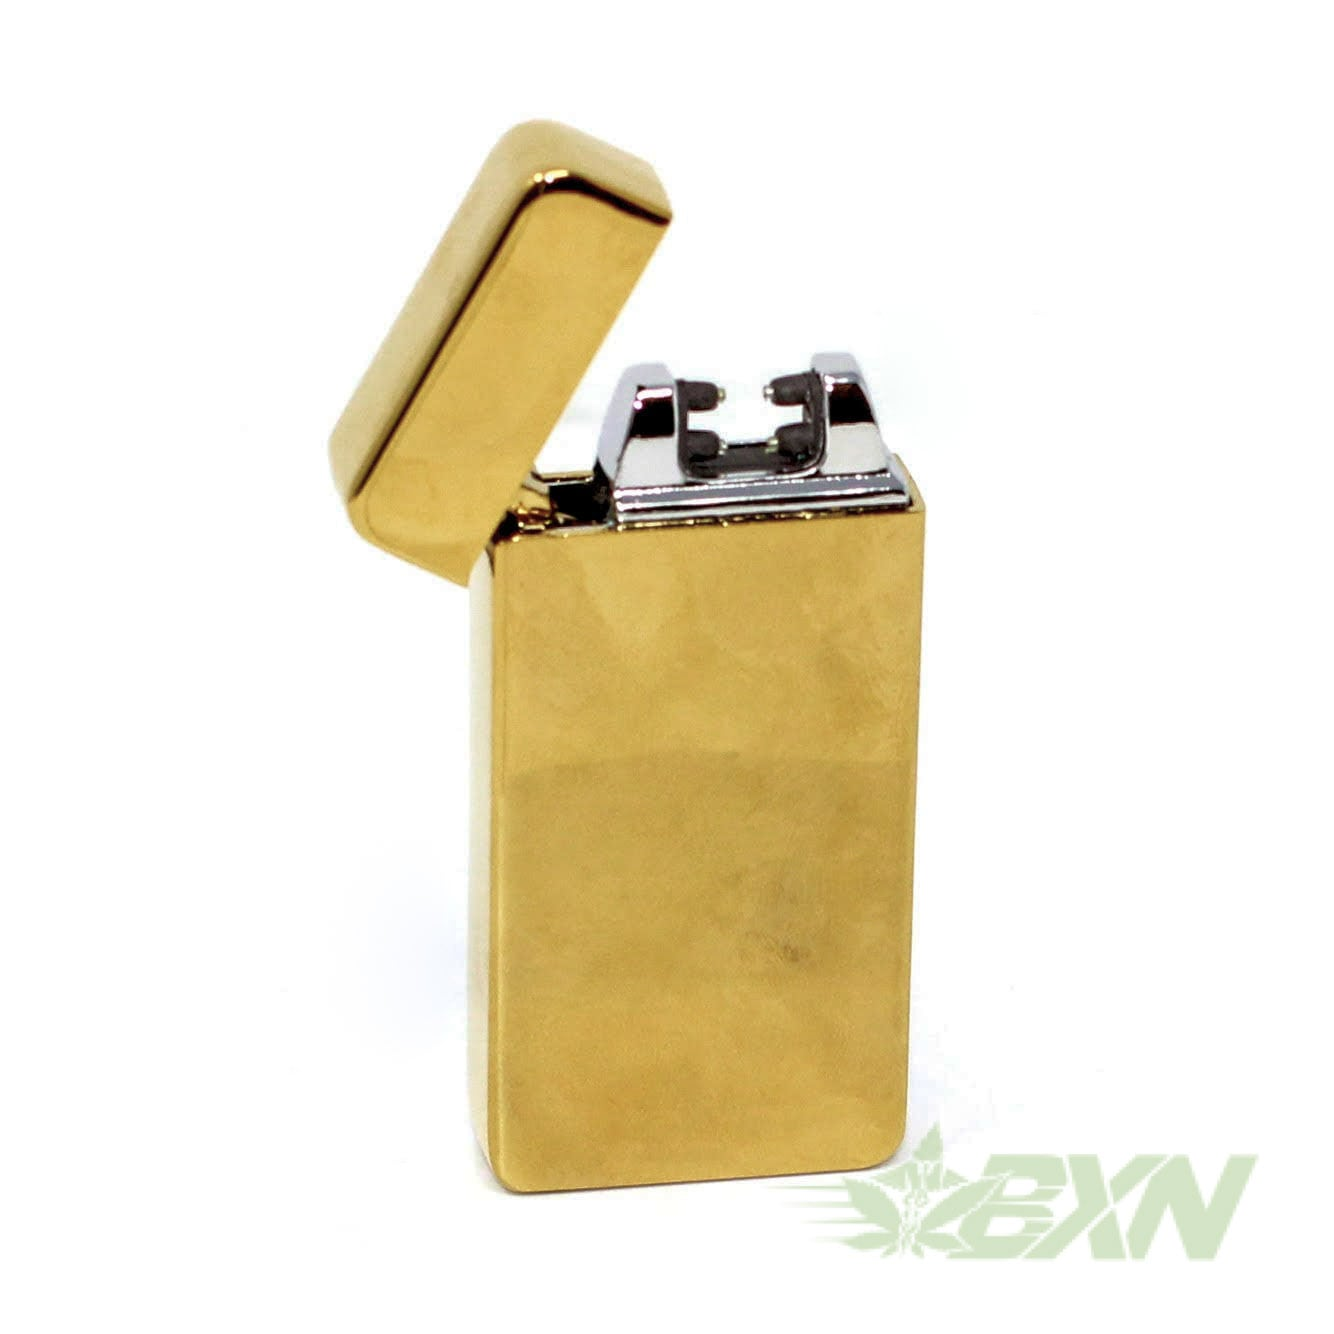 FLAMELESS RECHARGEABLE WINDPROOF LIGHTER - Gold